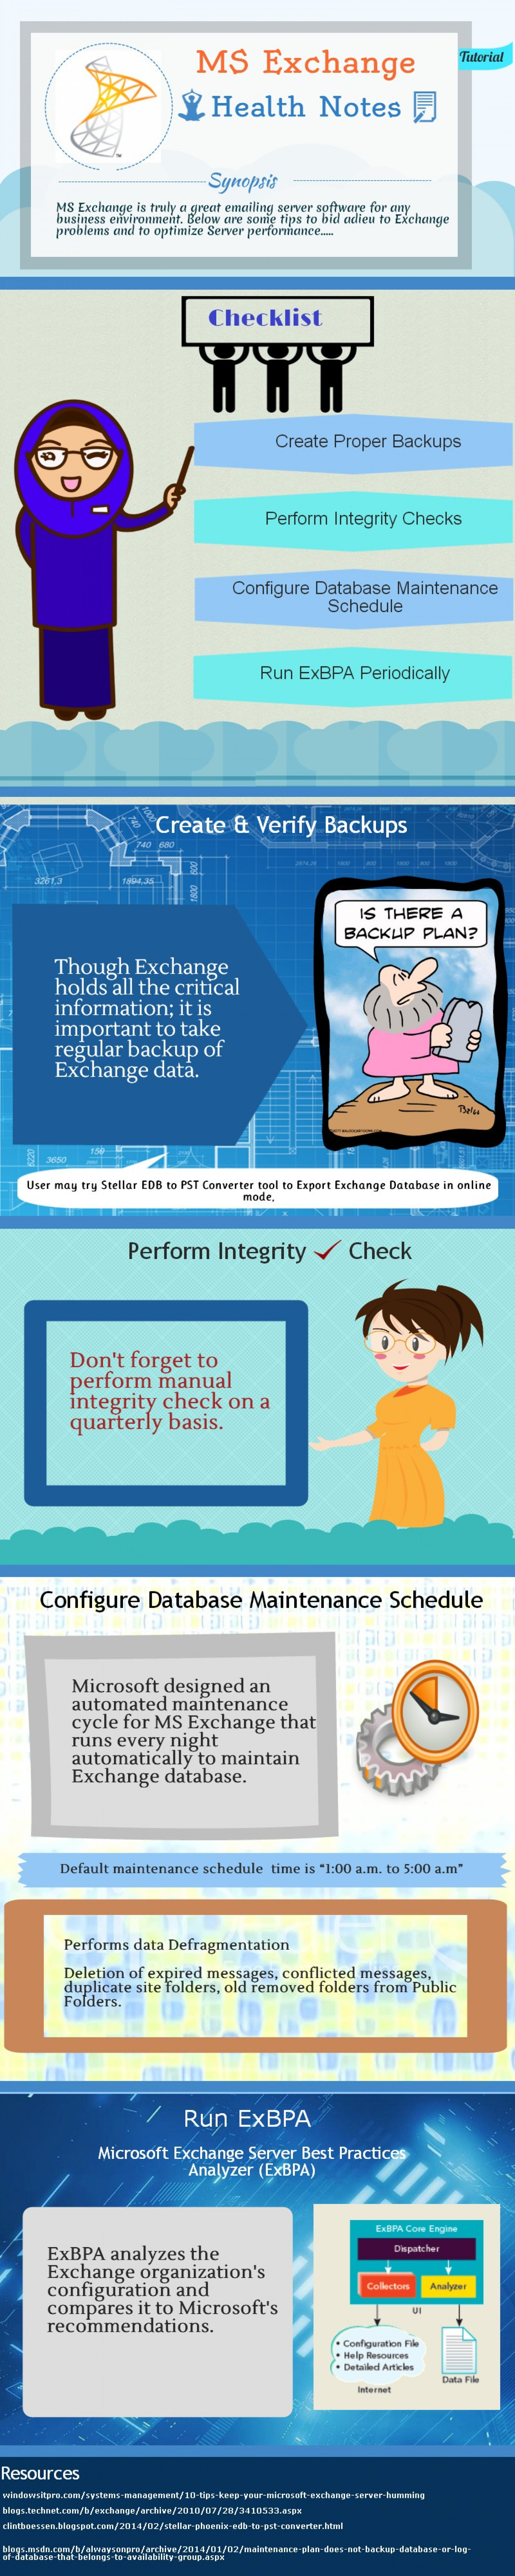 MS Exchange Health Notes Infographic